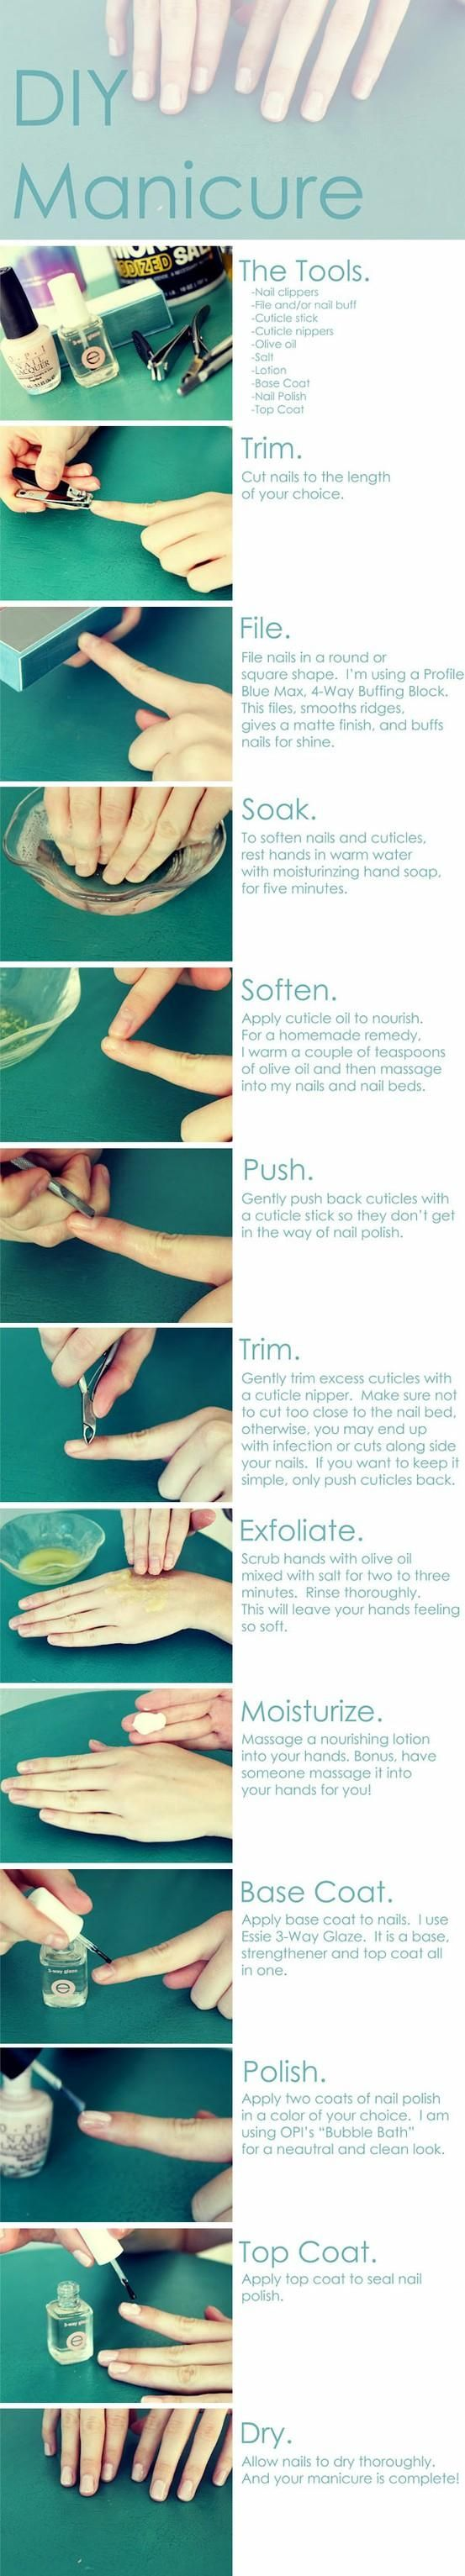 Laides you must try this!! DIY Manicure : I just treated myself to this and it was fantastic! I used Olive Oil and Epsom Salt to exfoliate!